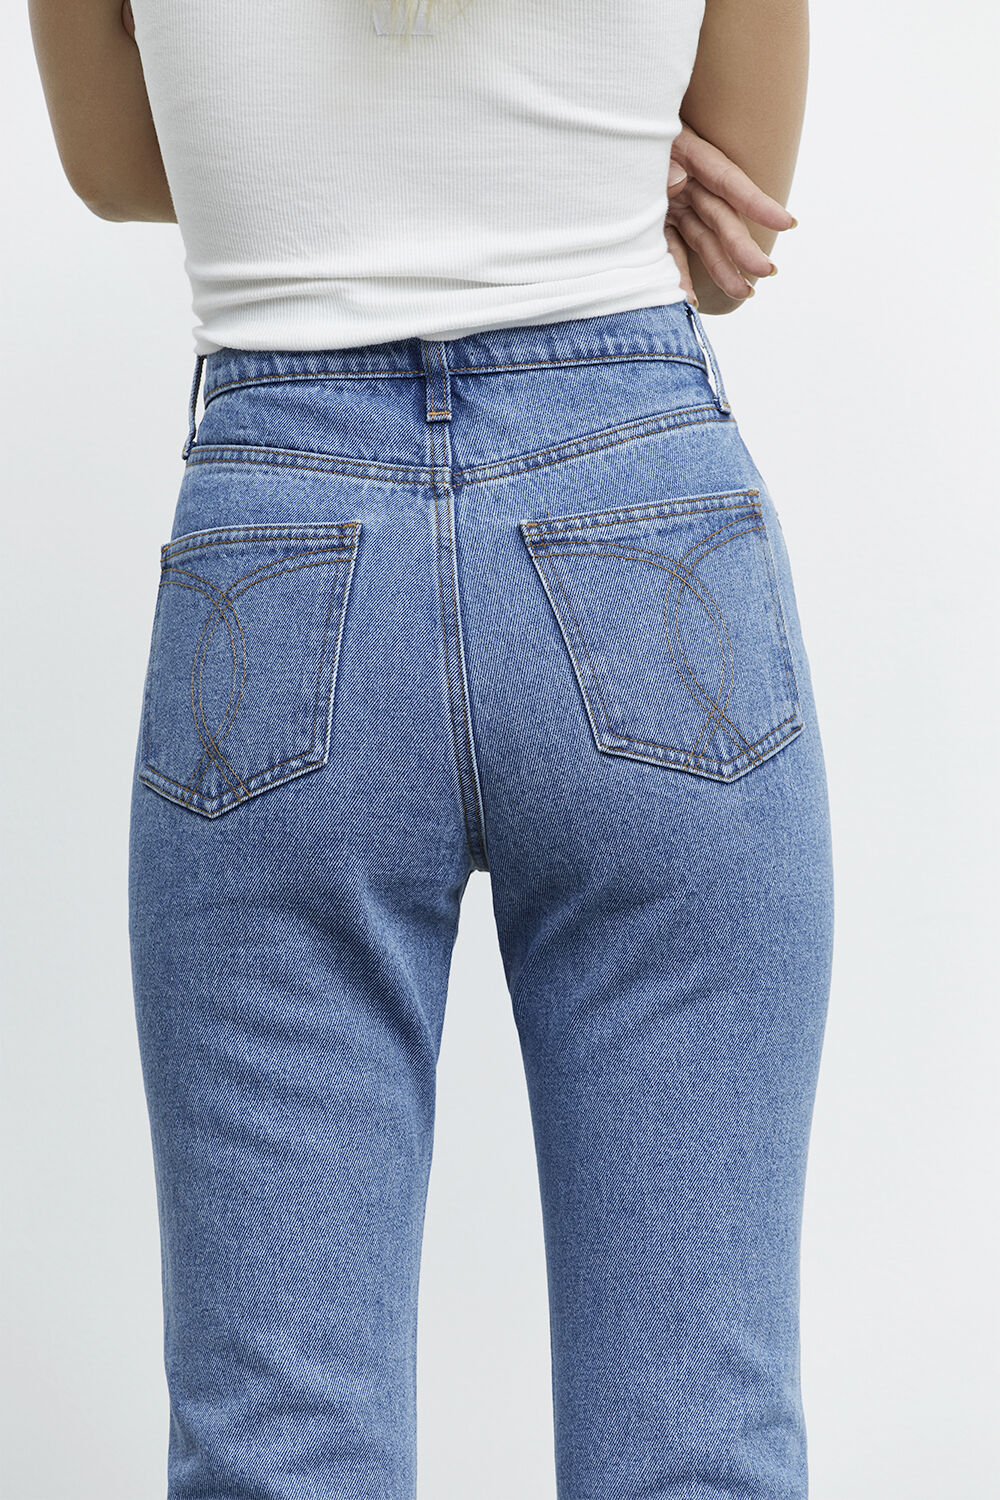 GISELE STRAIGHT LEG JEAN in colour TRUE NAVY